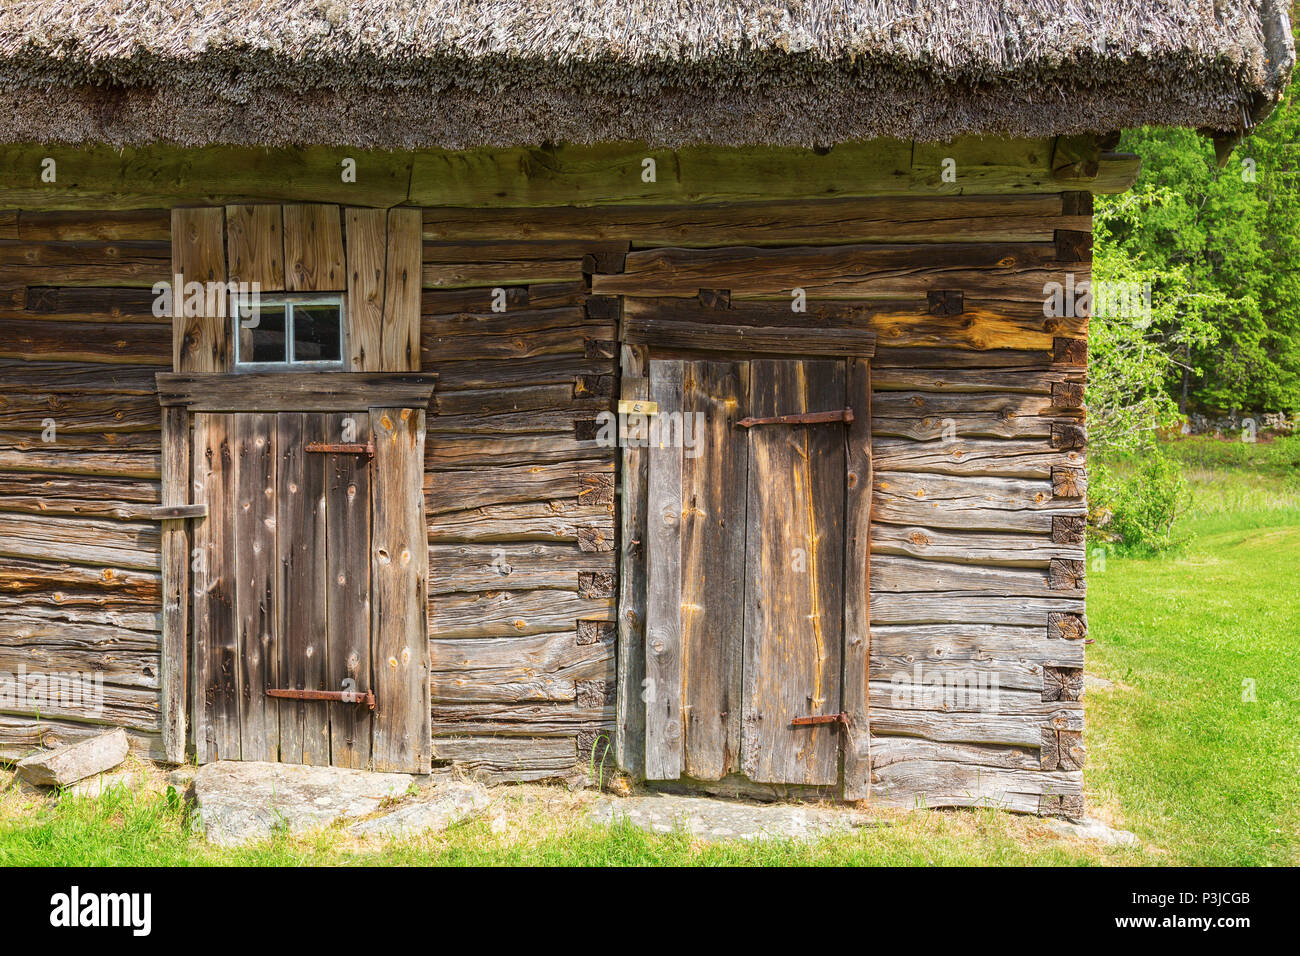 Old timber barn in the countryside - Stock Image